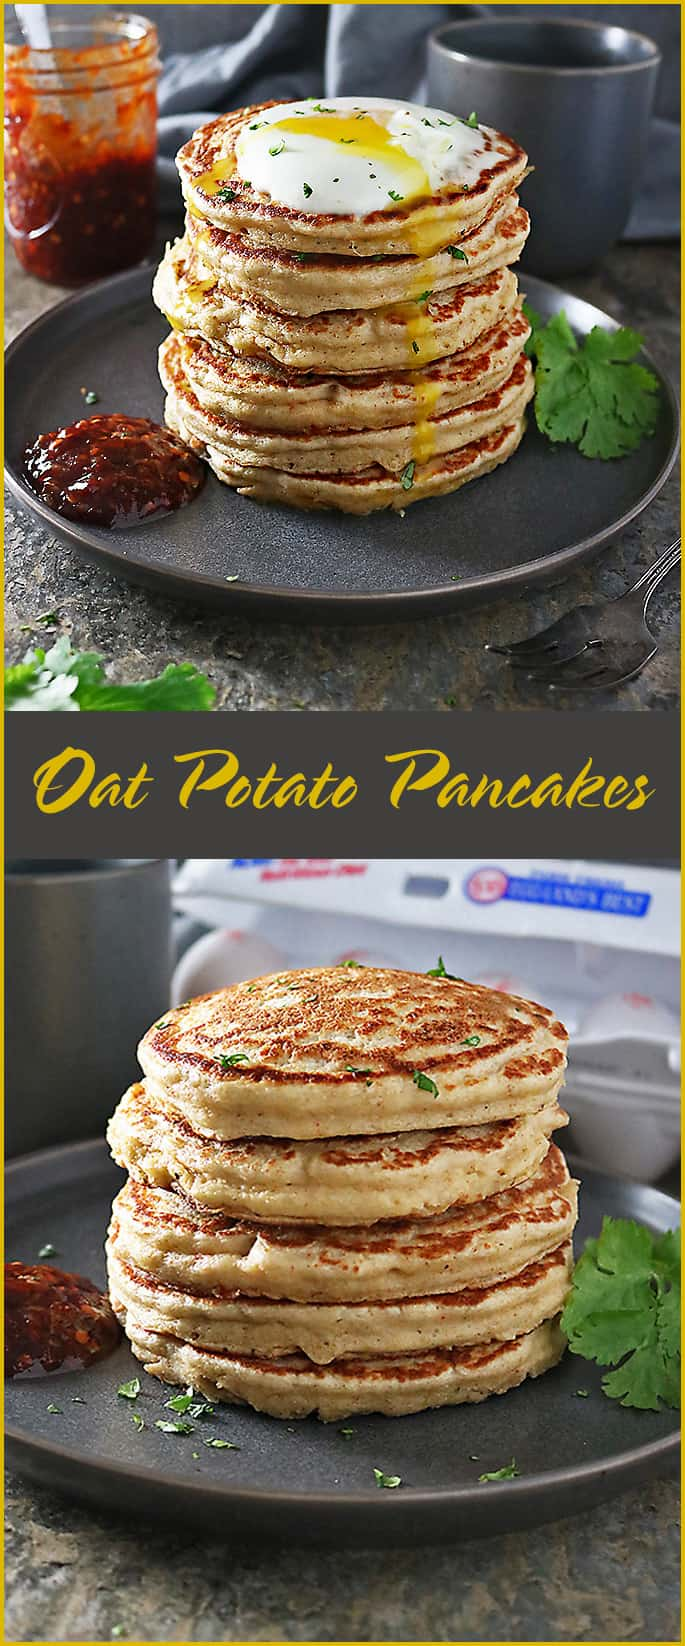 #ad These light and fluffy, gluten-free, 6-ingredient, Oat Potato Pancakes are so satisfying, so delicious, so comforting and yet, so good for ya! Whip up a stack to enjoy with your family this Saturday morning.